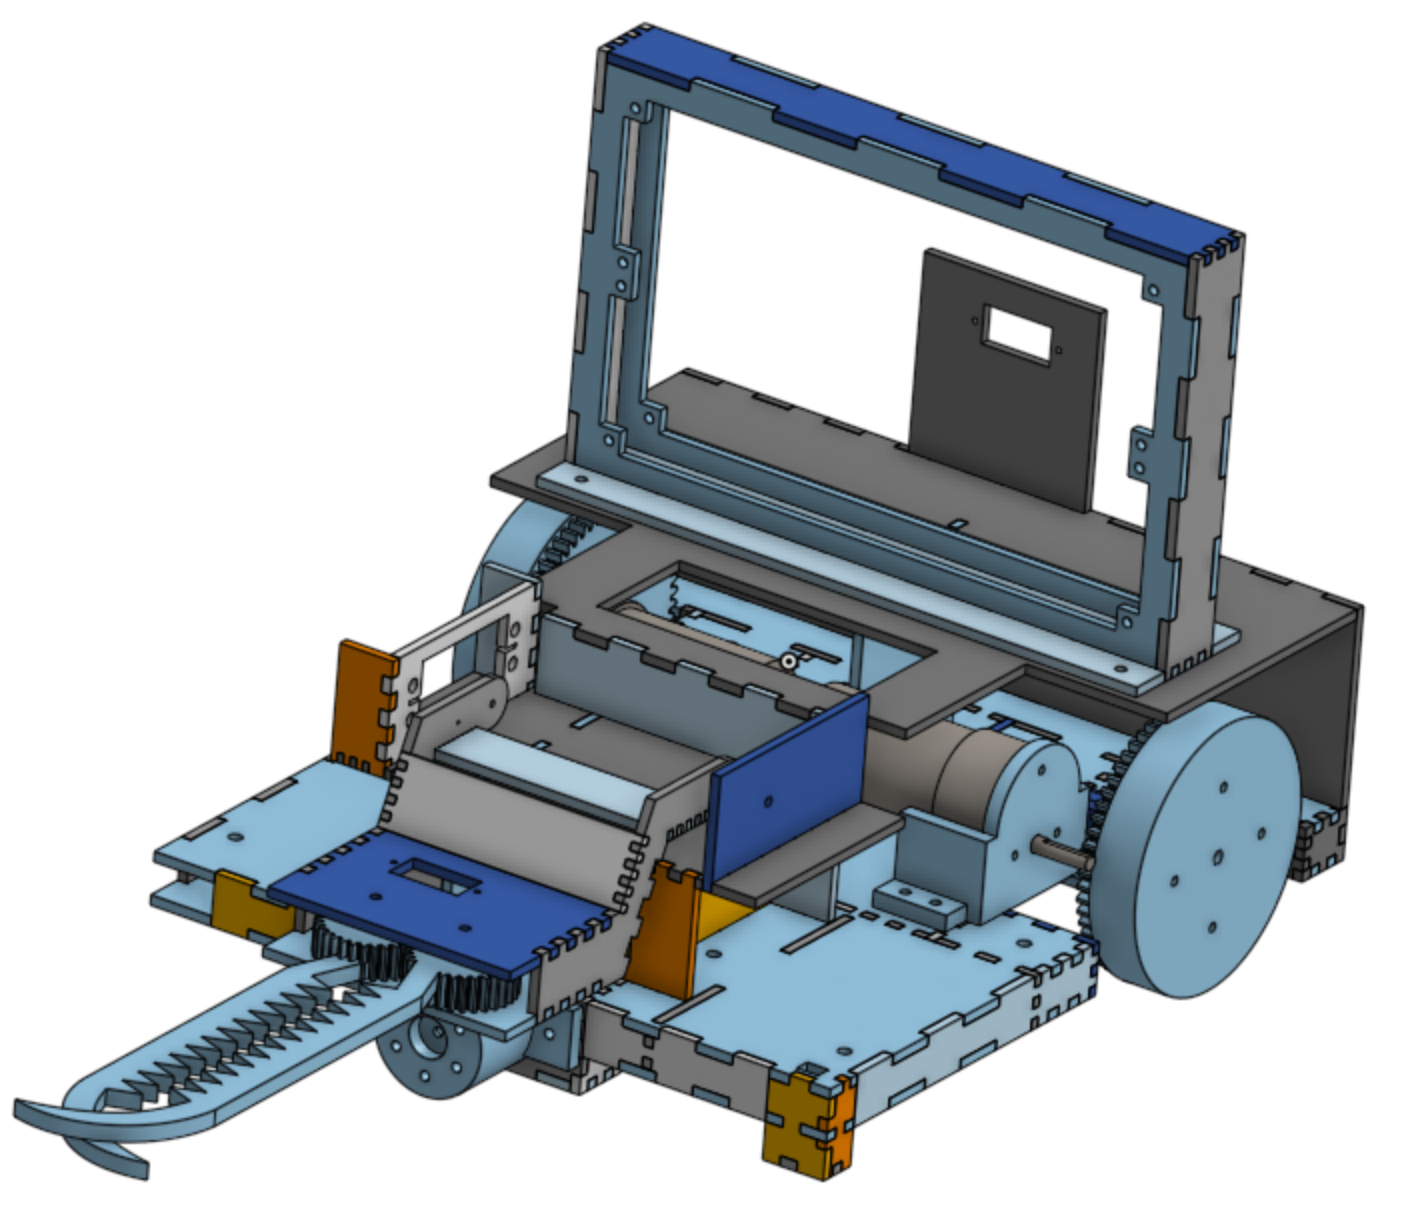 Final Chassis Design